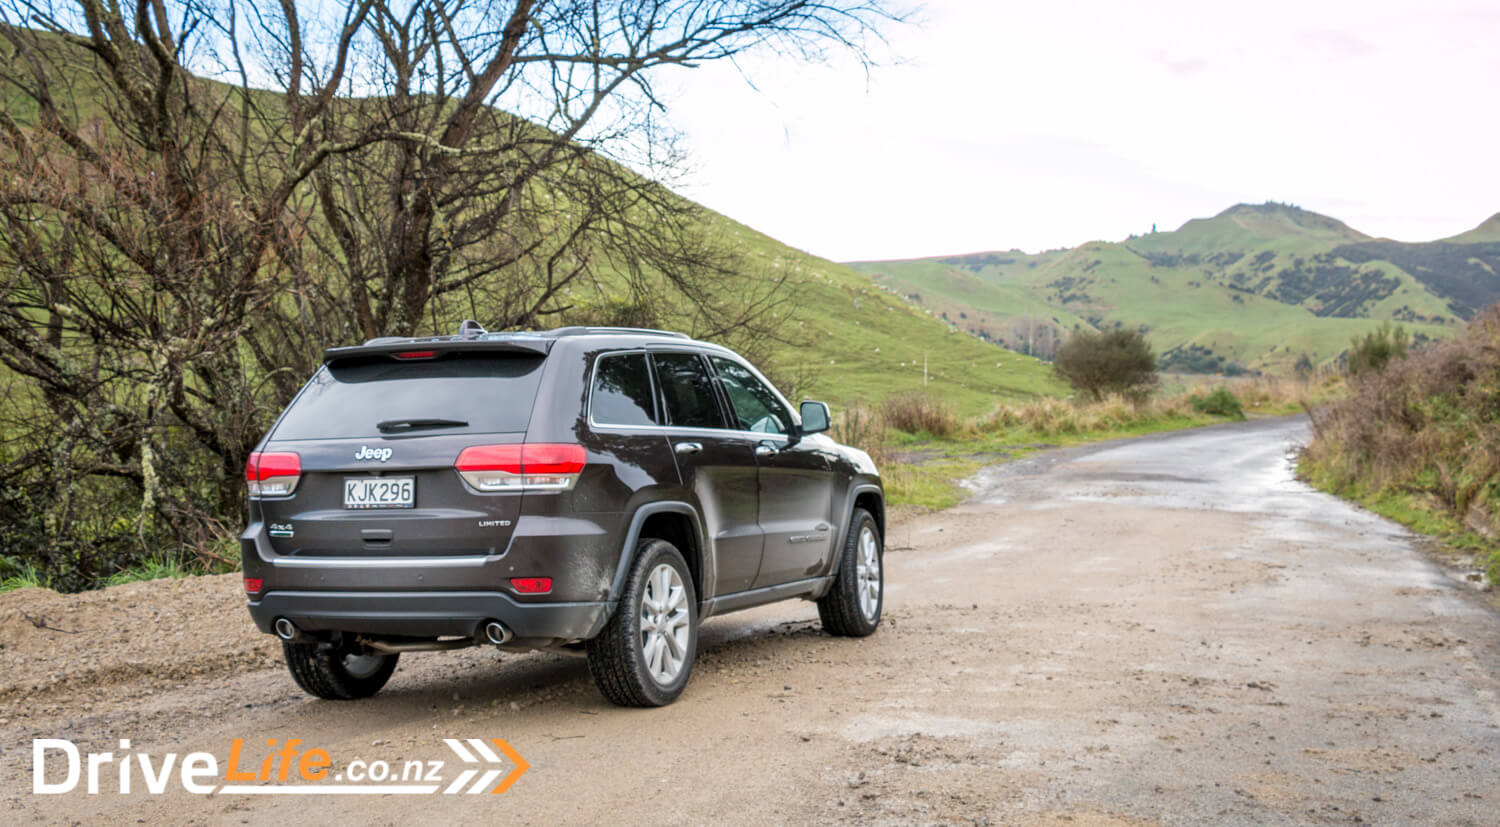 2017-Jeep-Grand-Cherokee-Car-Review-45